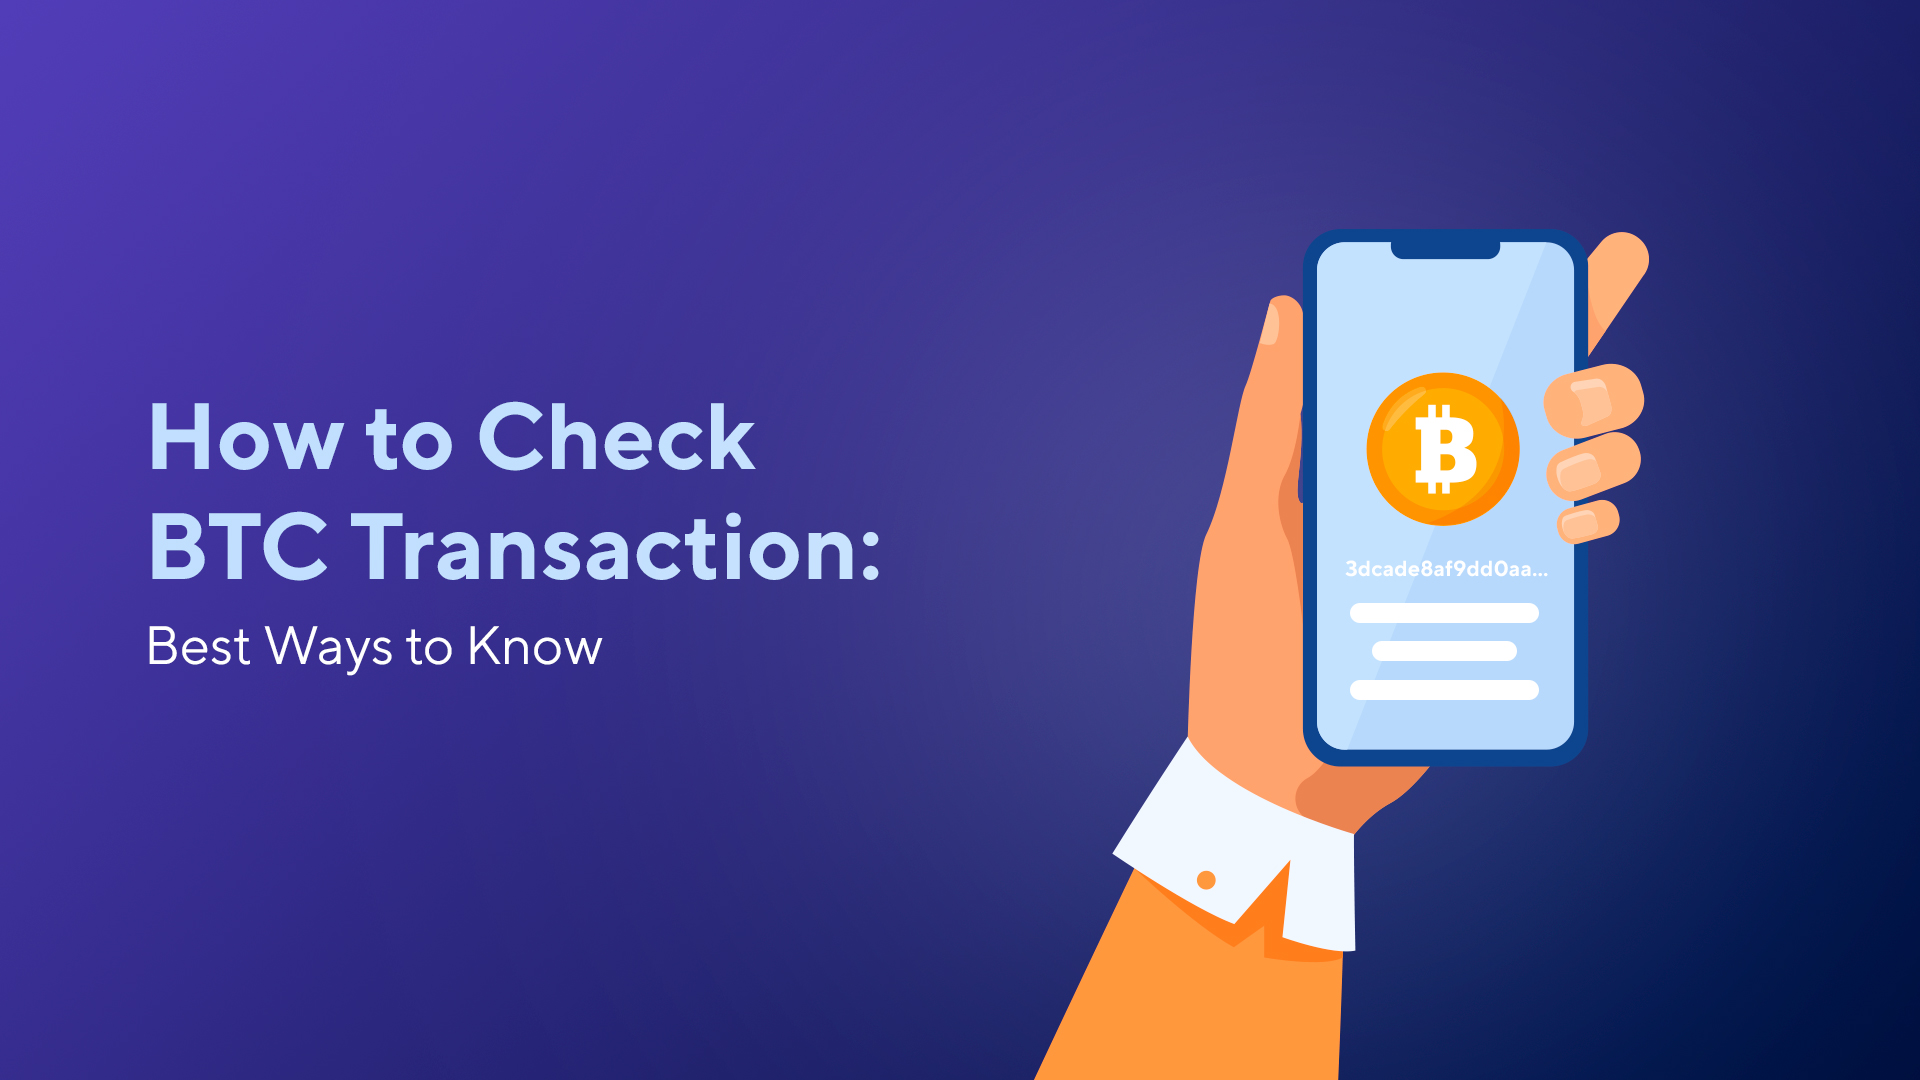 How to Check BTC Transaction: Best Ways to Know